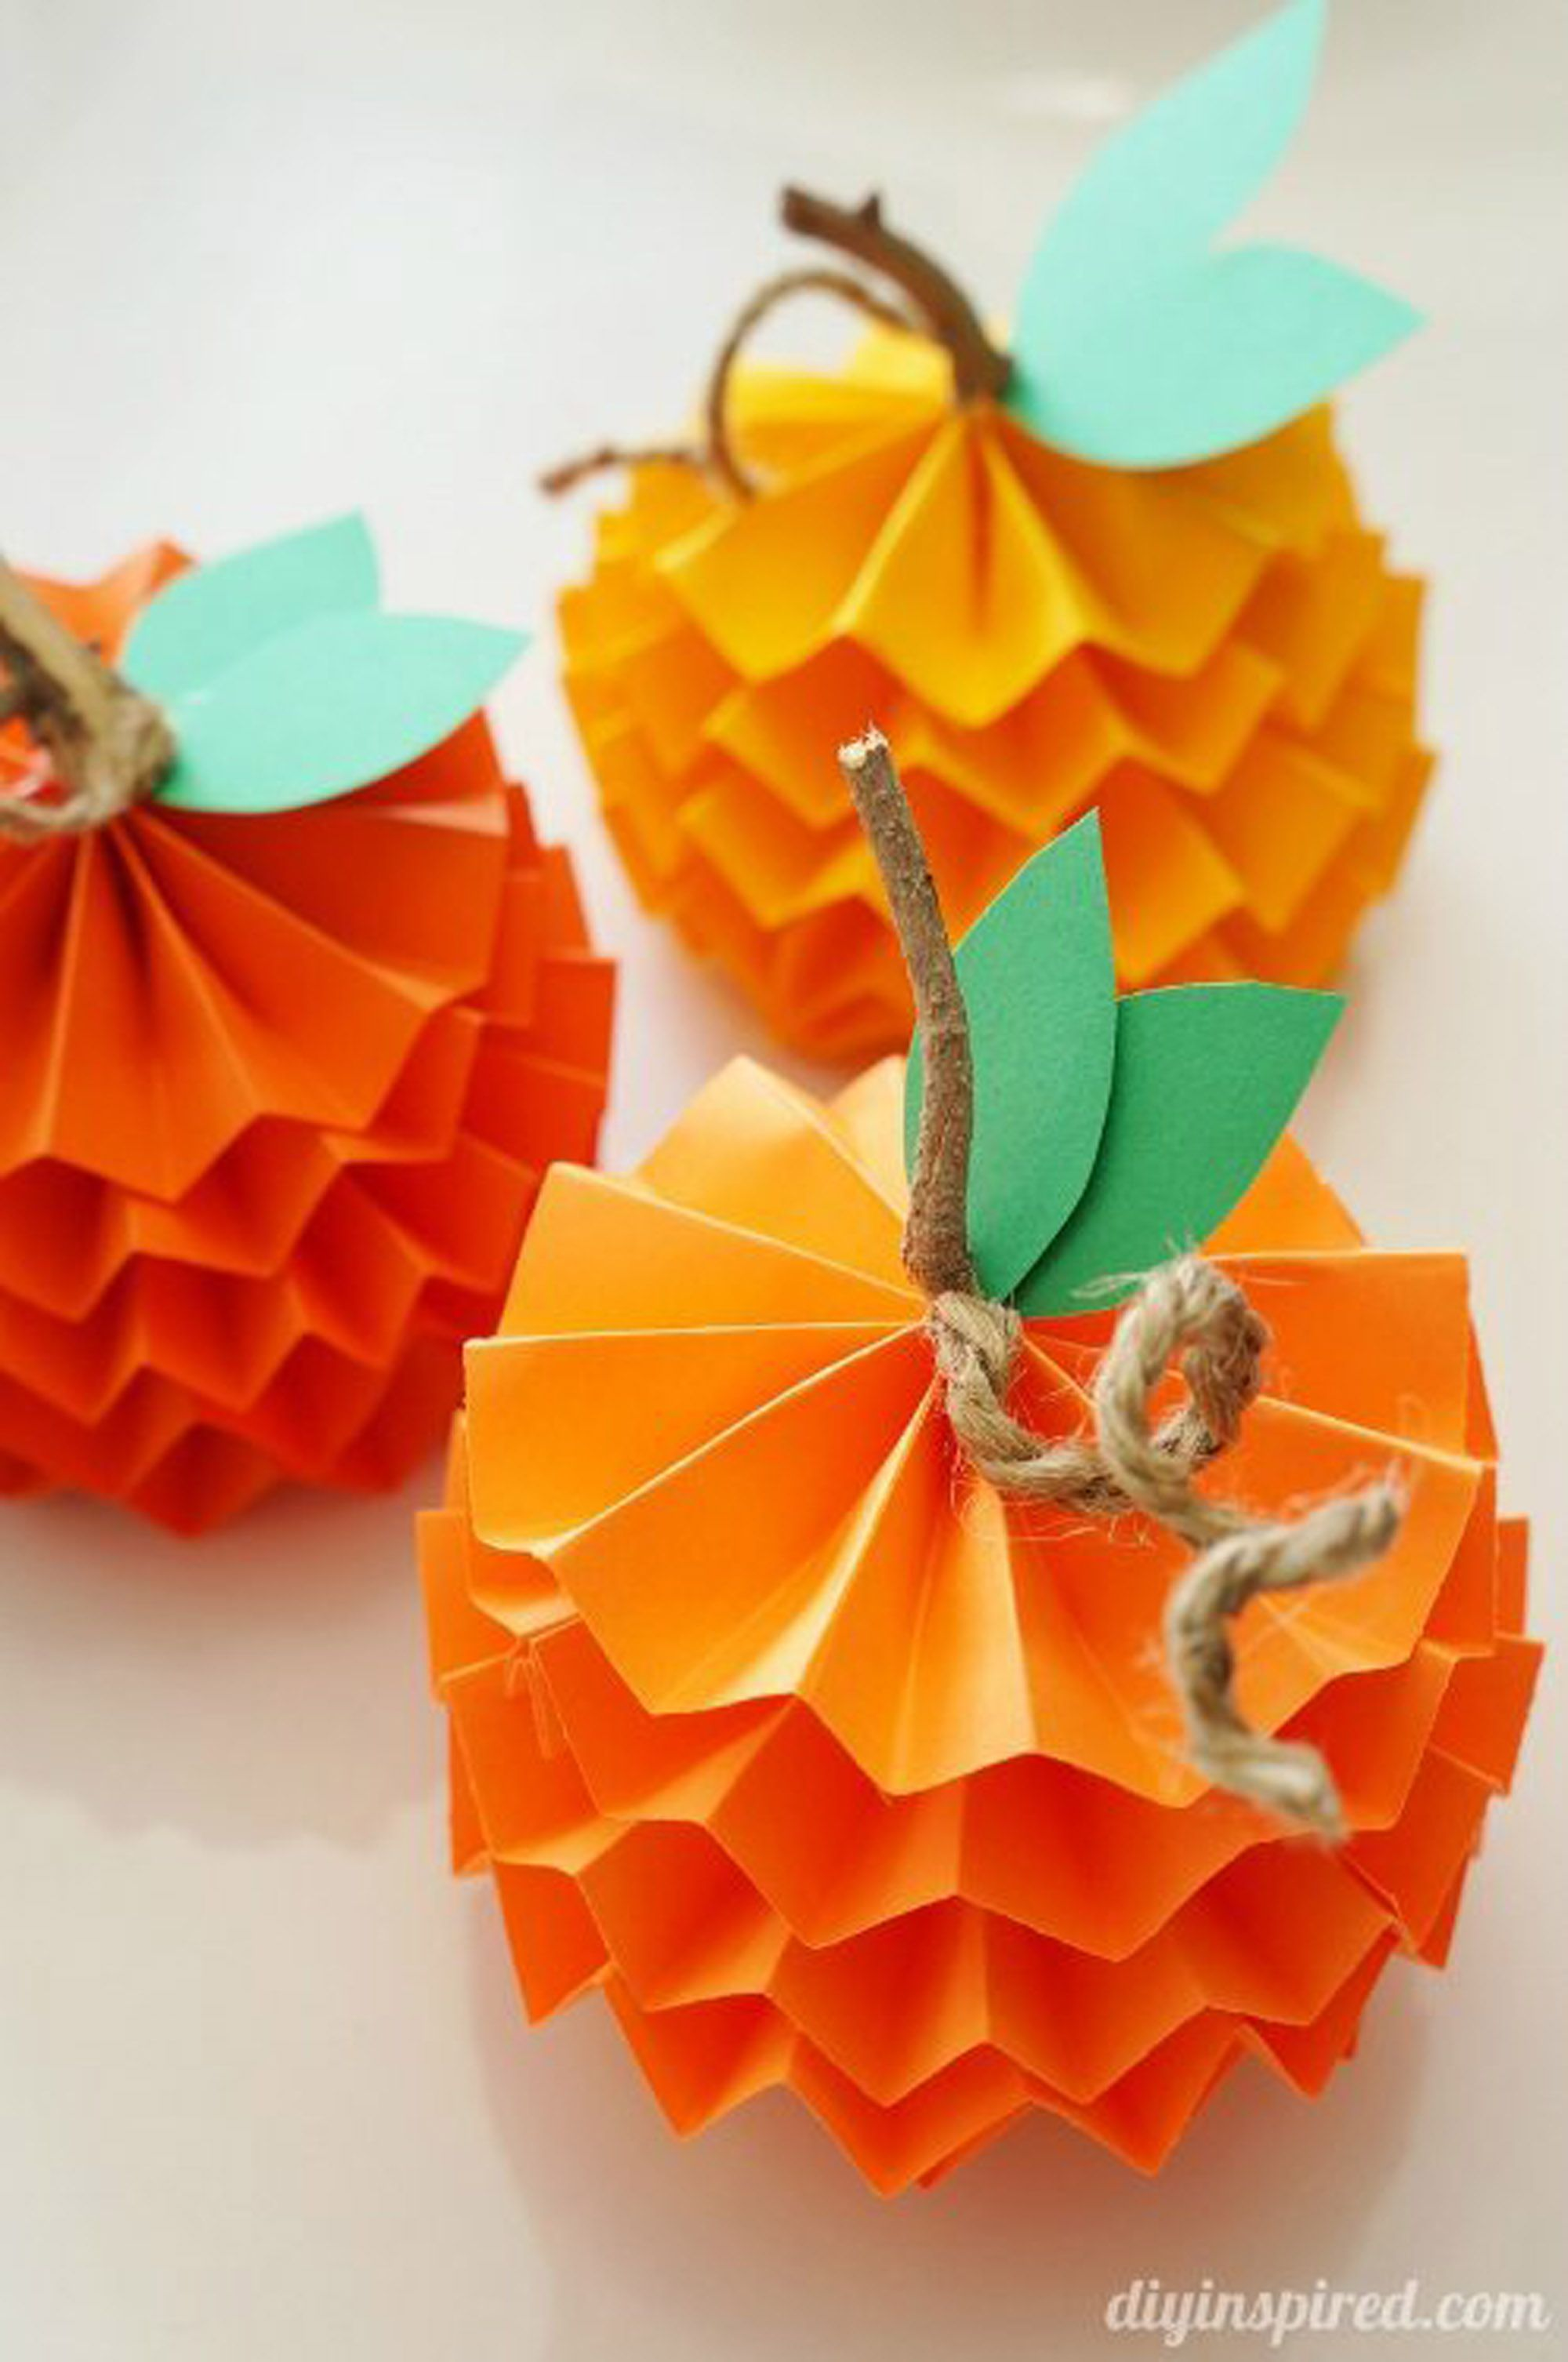 44 fall crafts for kids - fall activities and project ideas for kids